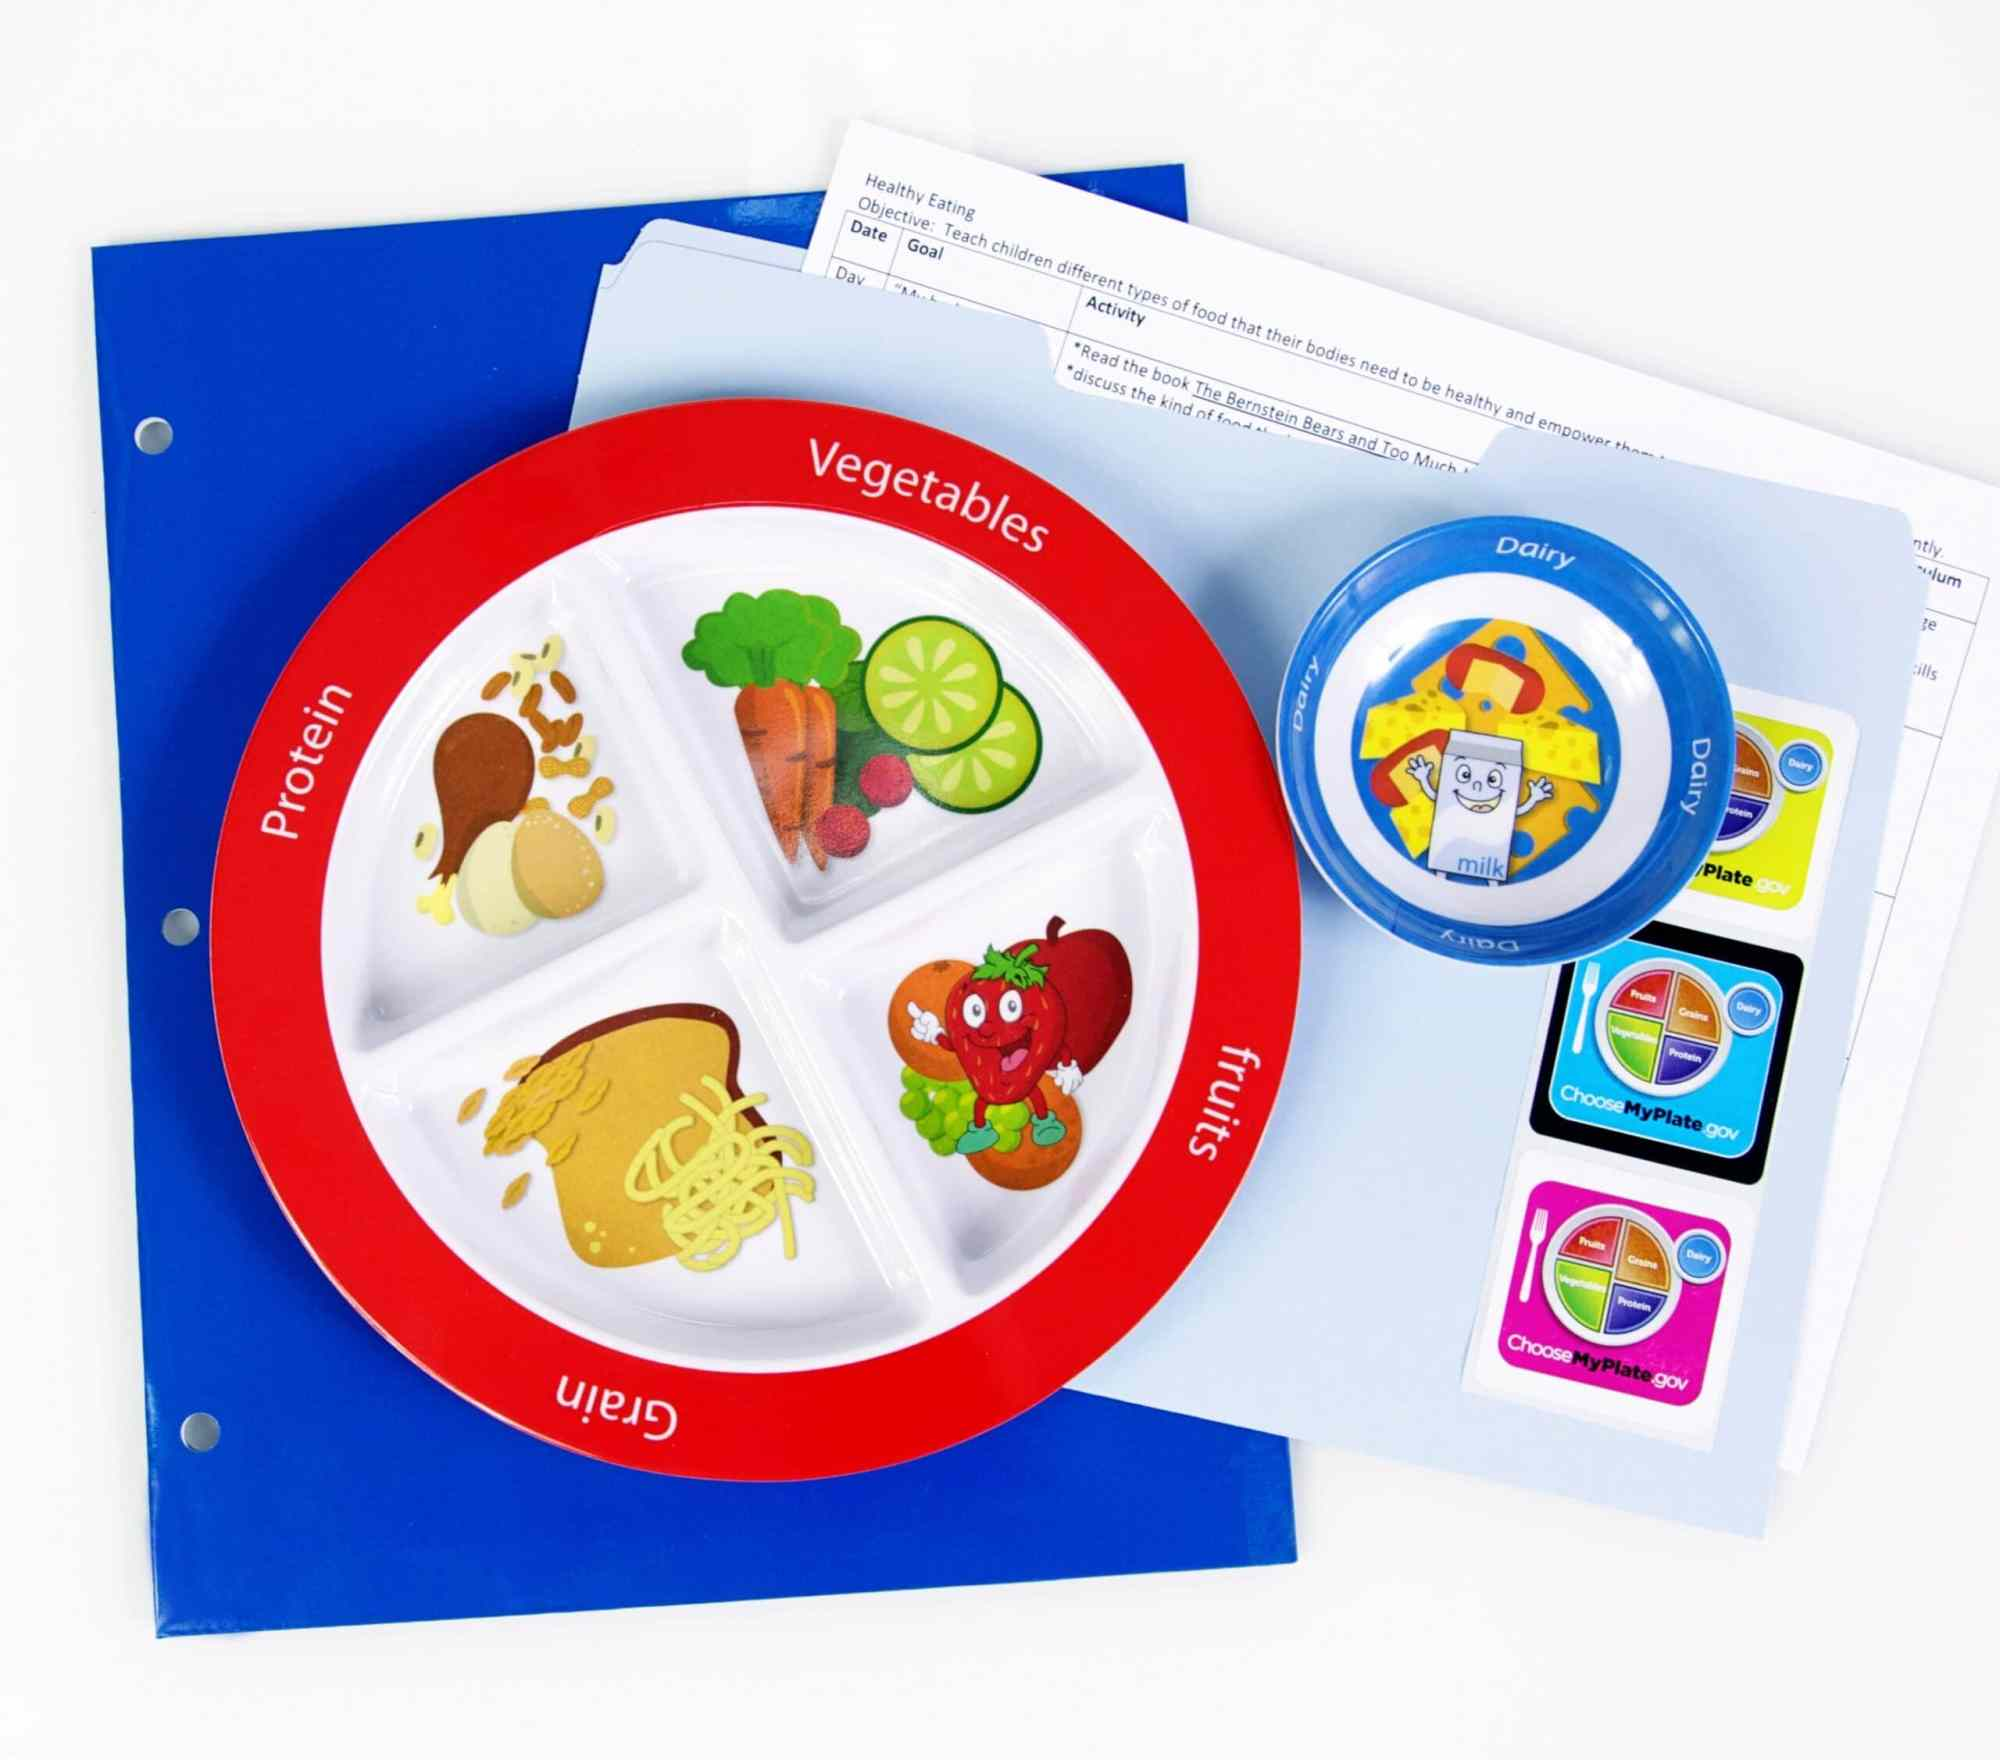 hight resolution of Nutrition Lesson Plans and Tools For Teaching - Super Healthy Kids